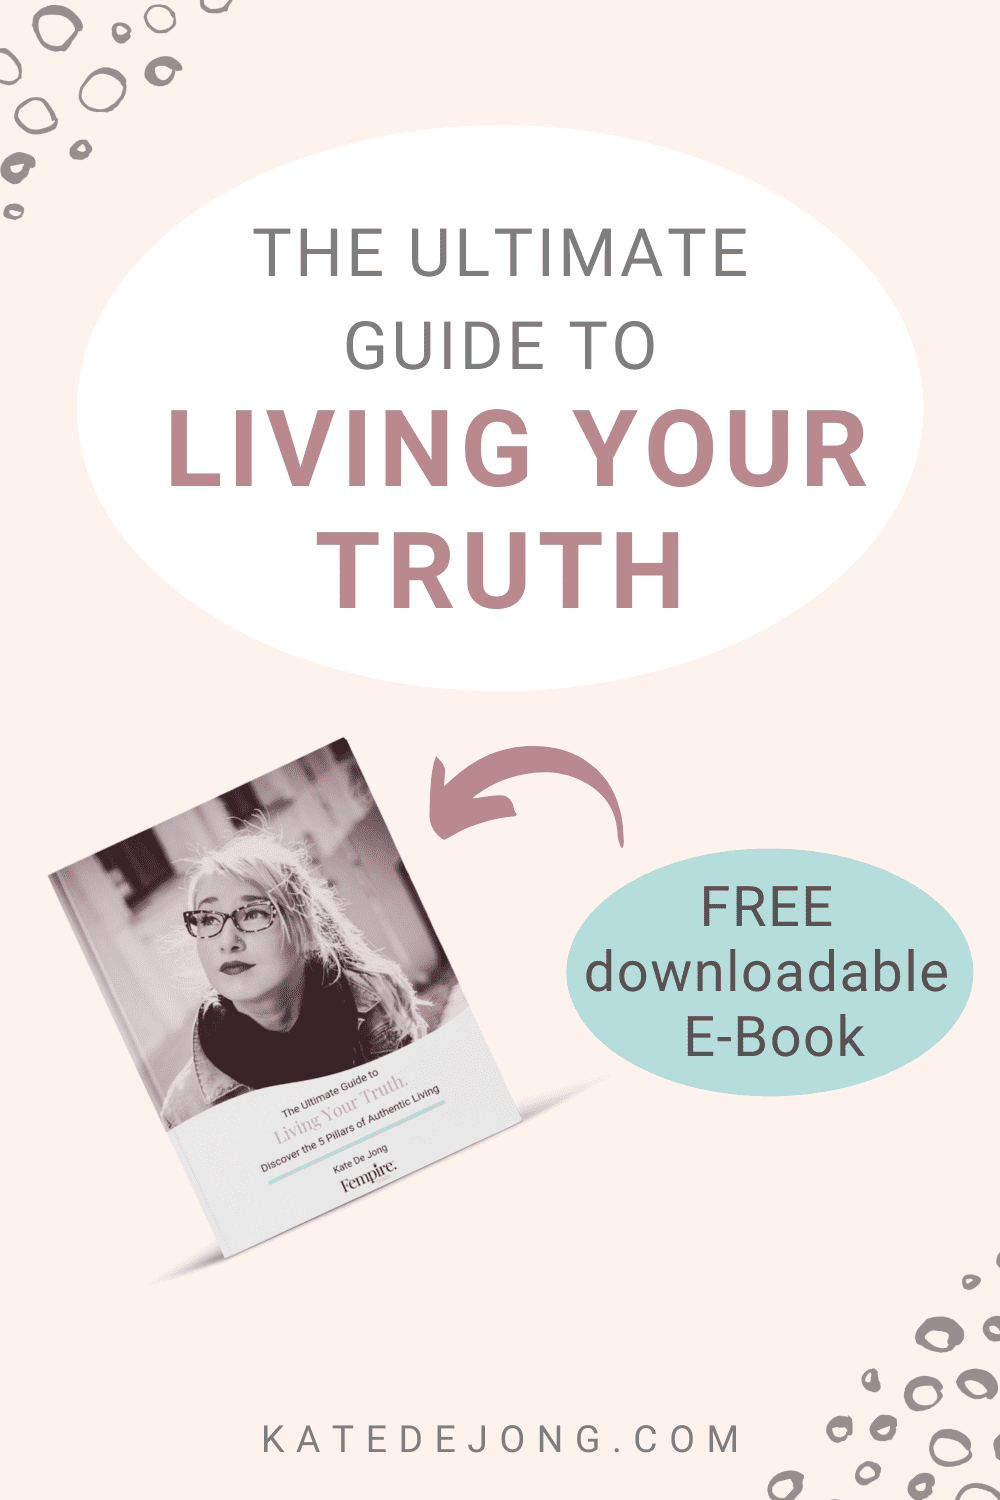 Download your FREE E-Book 'The Ultimate Guide to Living Your Truth' to discover 5 powerful strategies that will help you live your brightest and happiest life. Don't waste any more time feeling less than completely fulfilled! #authenticity #beyourself #findyourpurpose #personalgrowth #findyourcalling #purposefulliving #selflove #fempire #fempirecoach #businesscoachforwomen